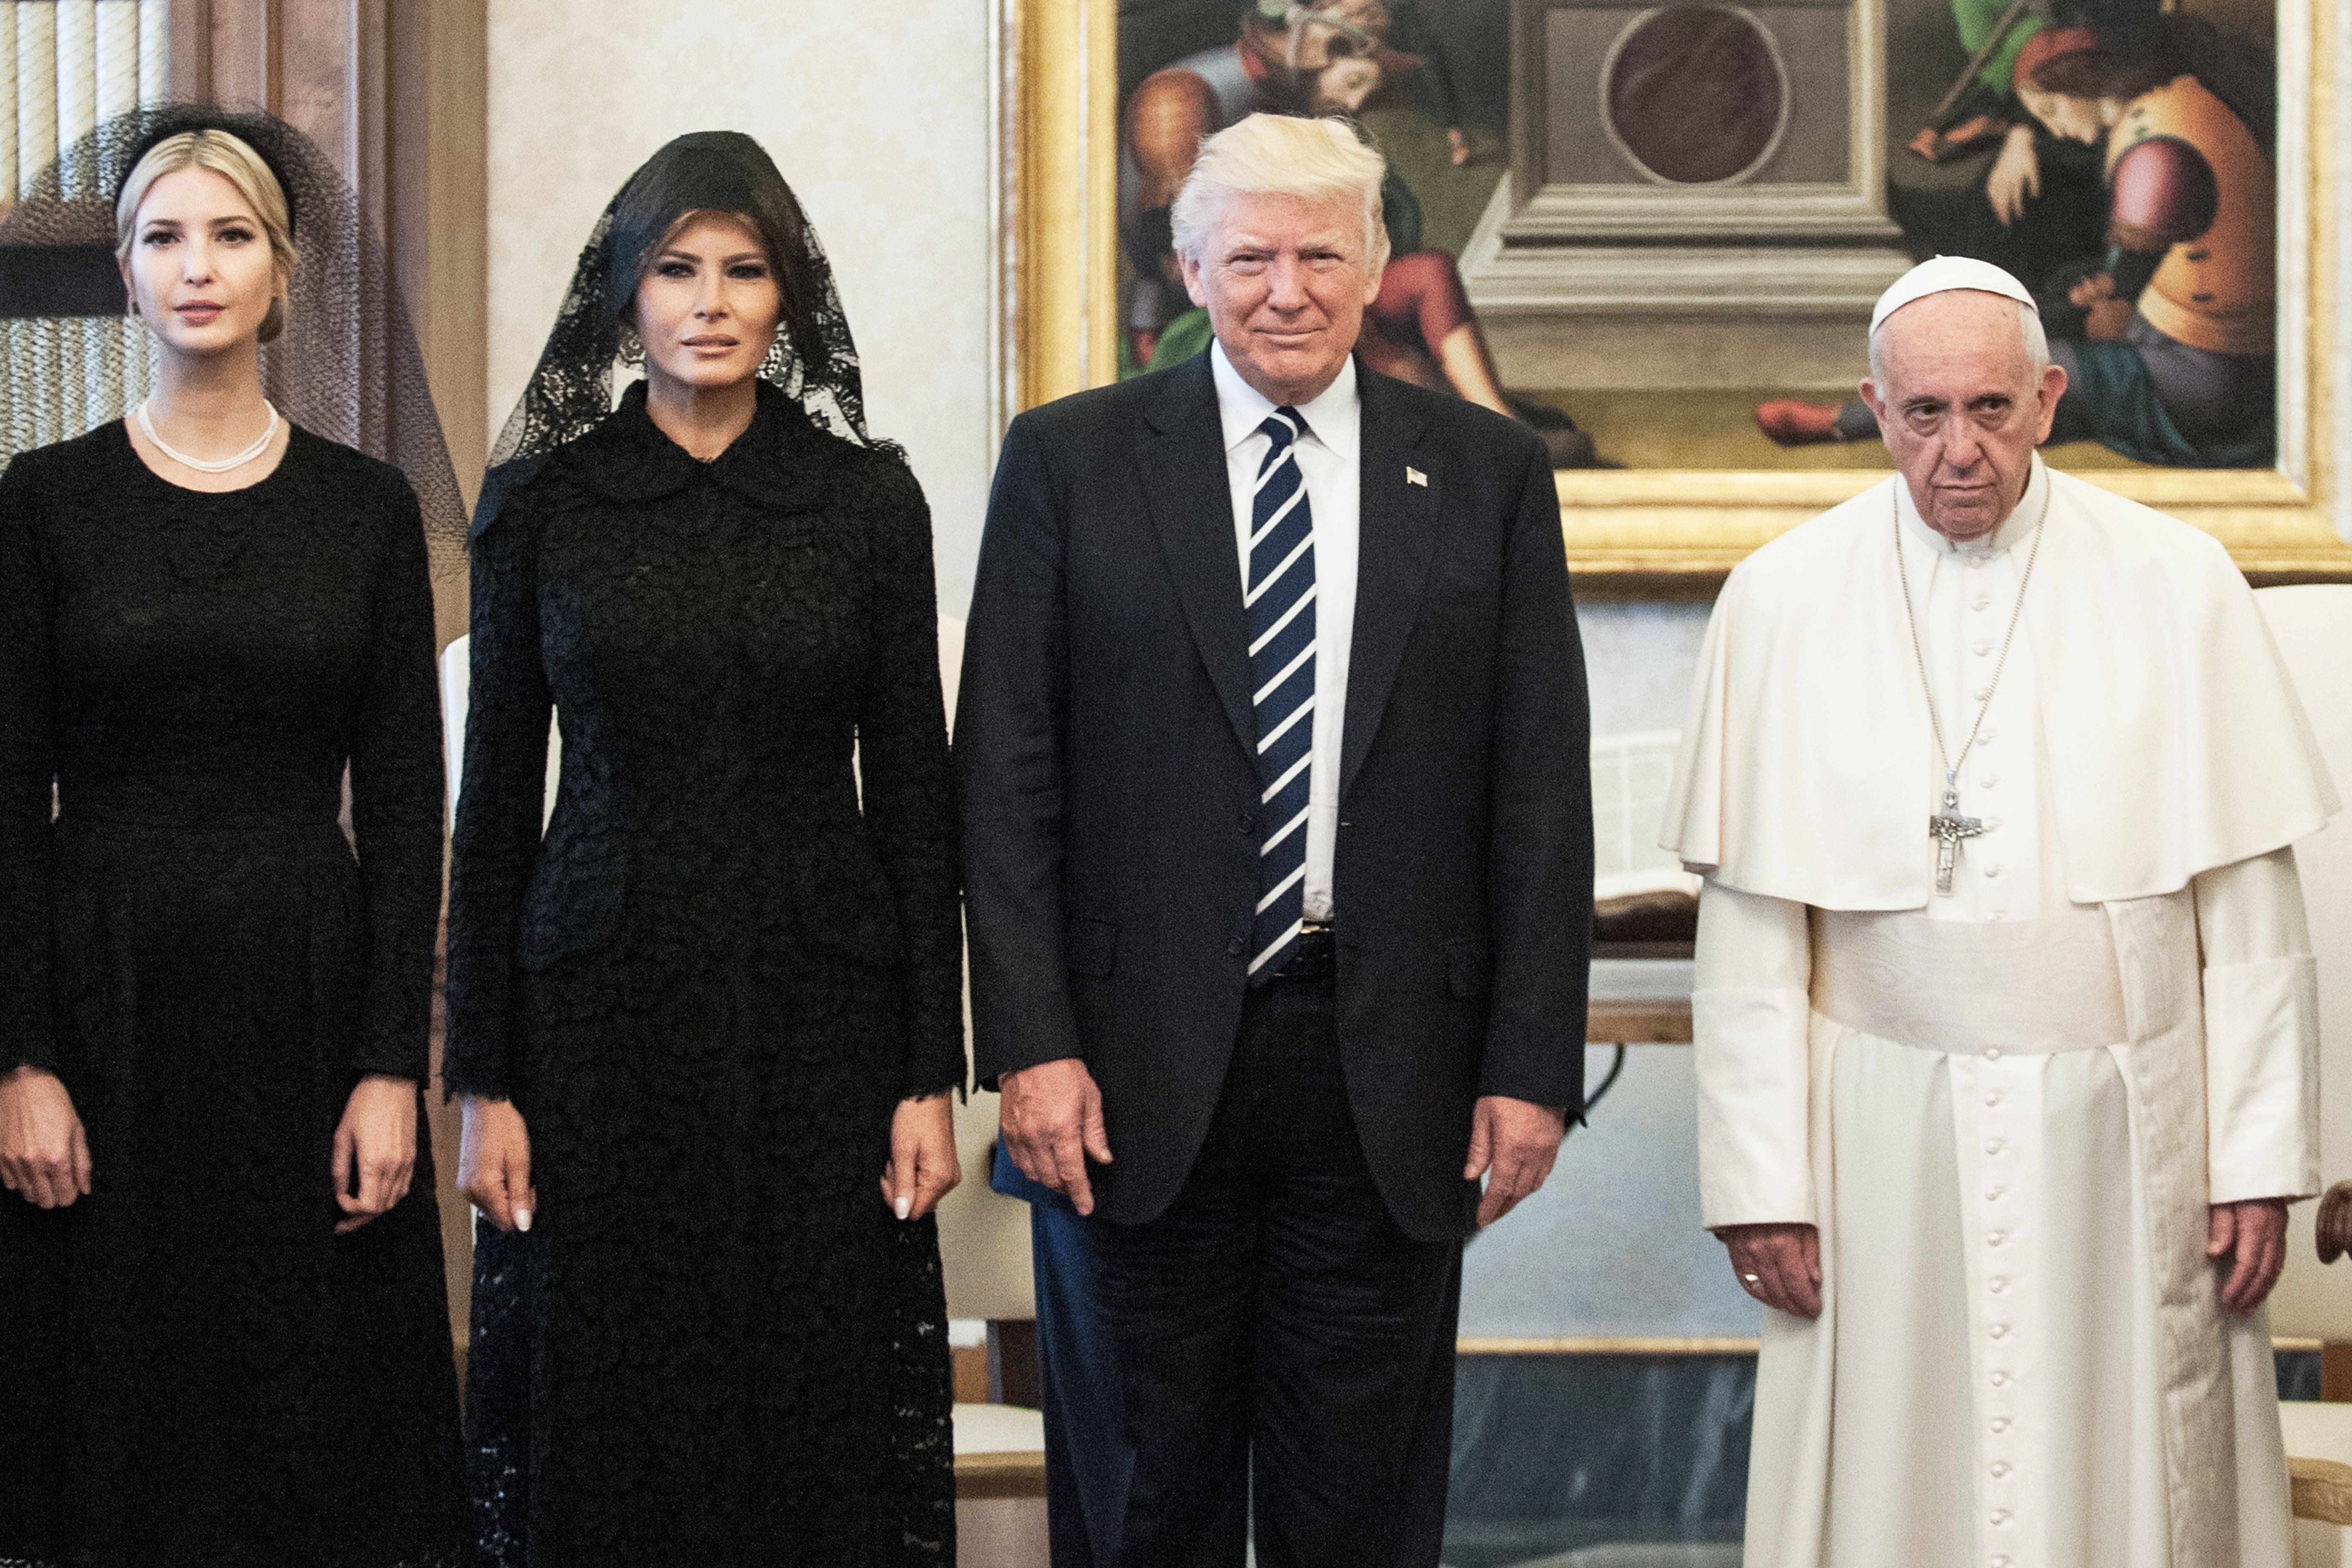 A Brief History Of Why The Pope Looks F*cking Devastated To Meet Donald